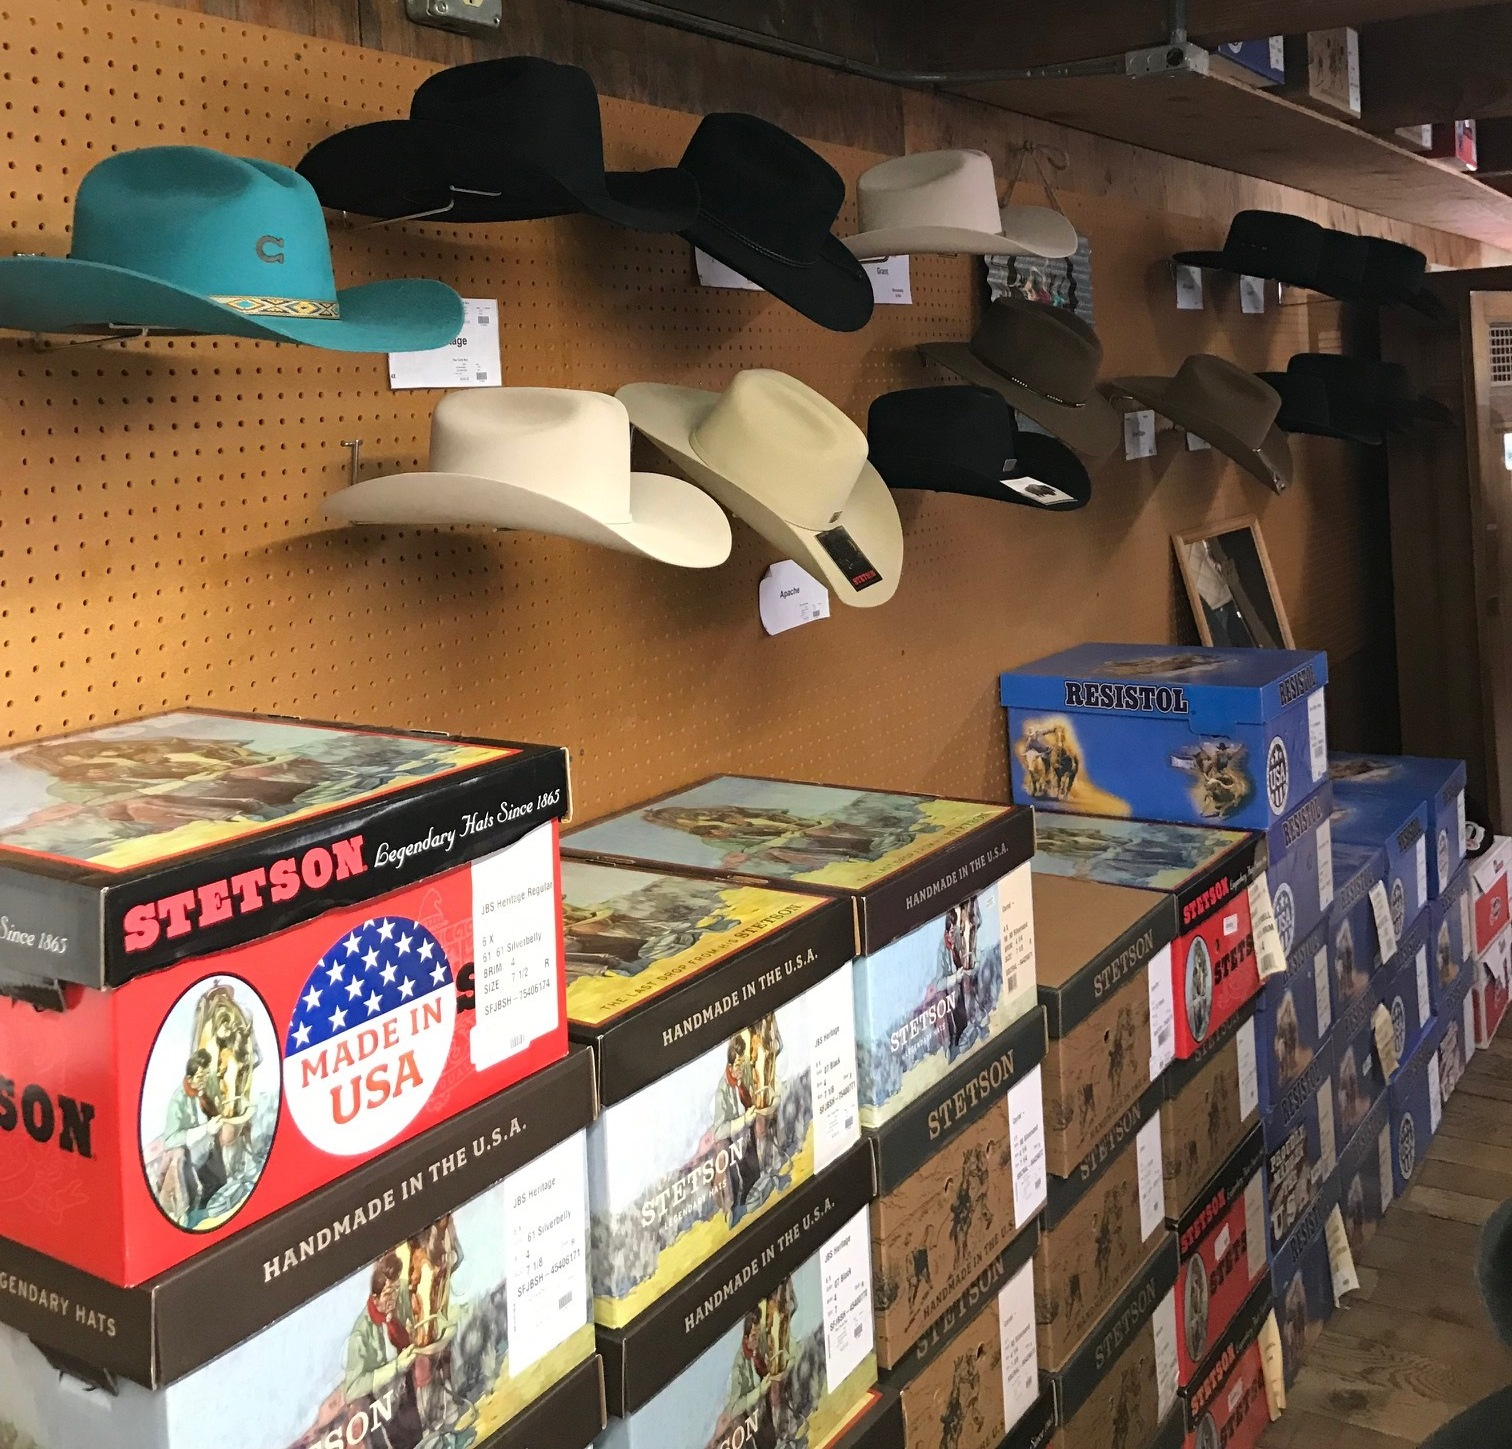 Hats; Felt and Straw  - Choose from a wide selection of hats from brands such as; Stetson, Resistol, and Justin. Many different styles, sizes, and colors to choose from year round!